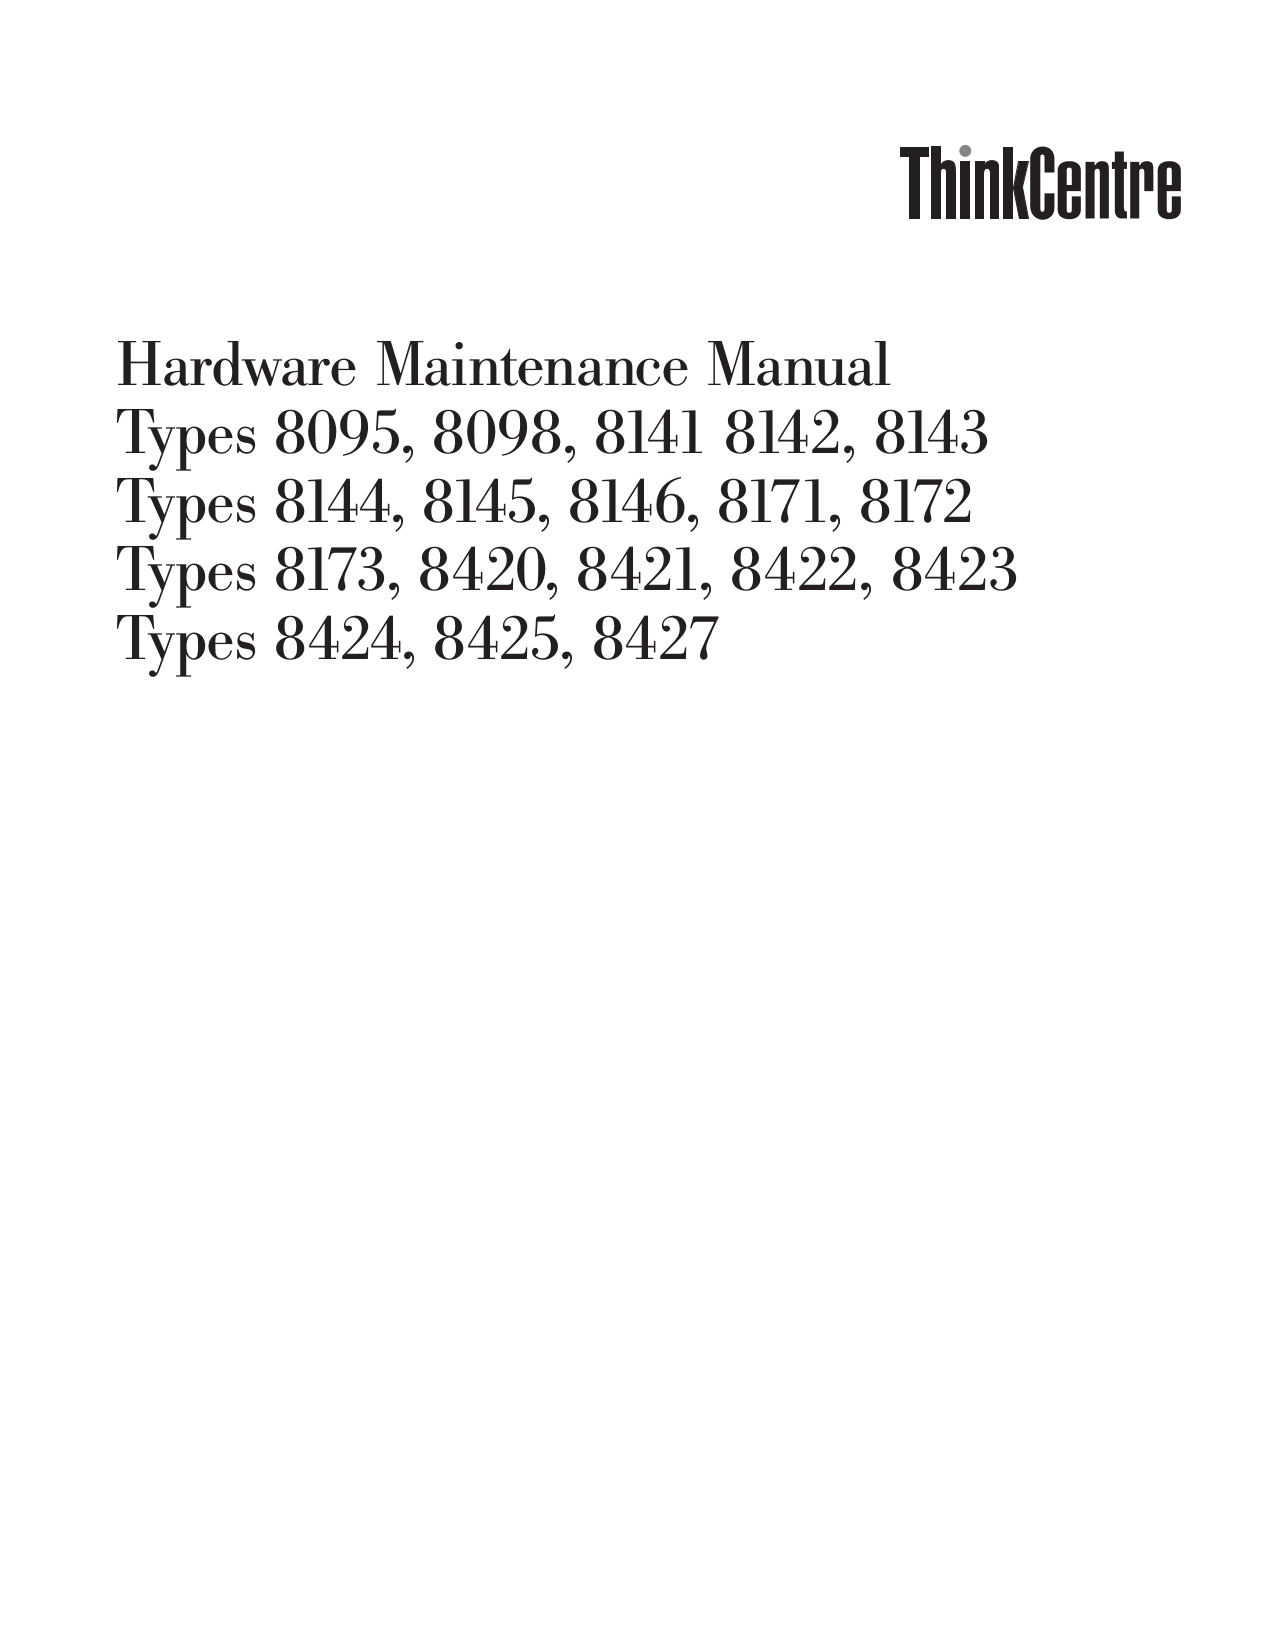 pdf for Lenovo Desktop ThinkCentre A51p 8427 manual